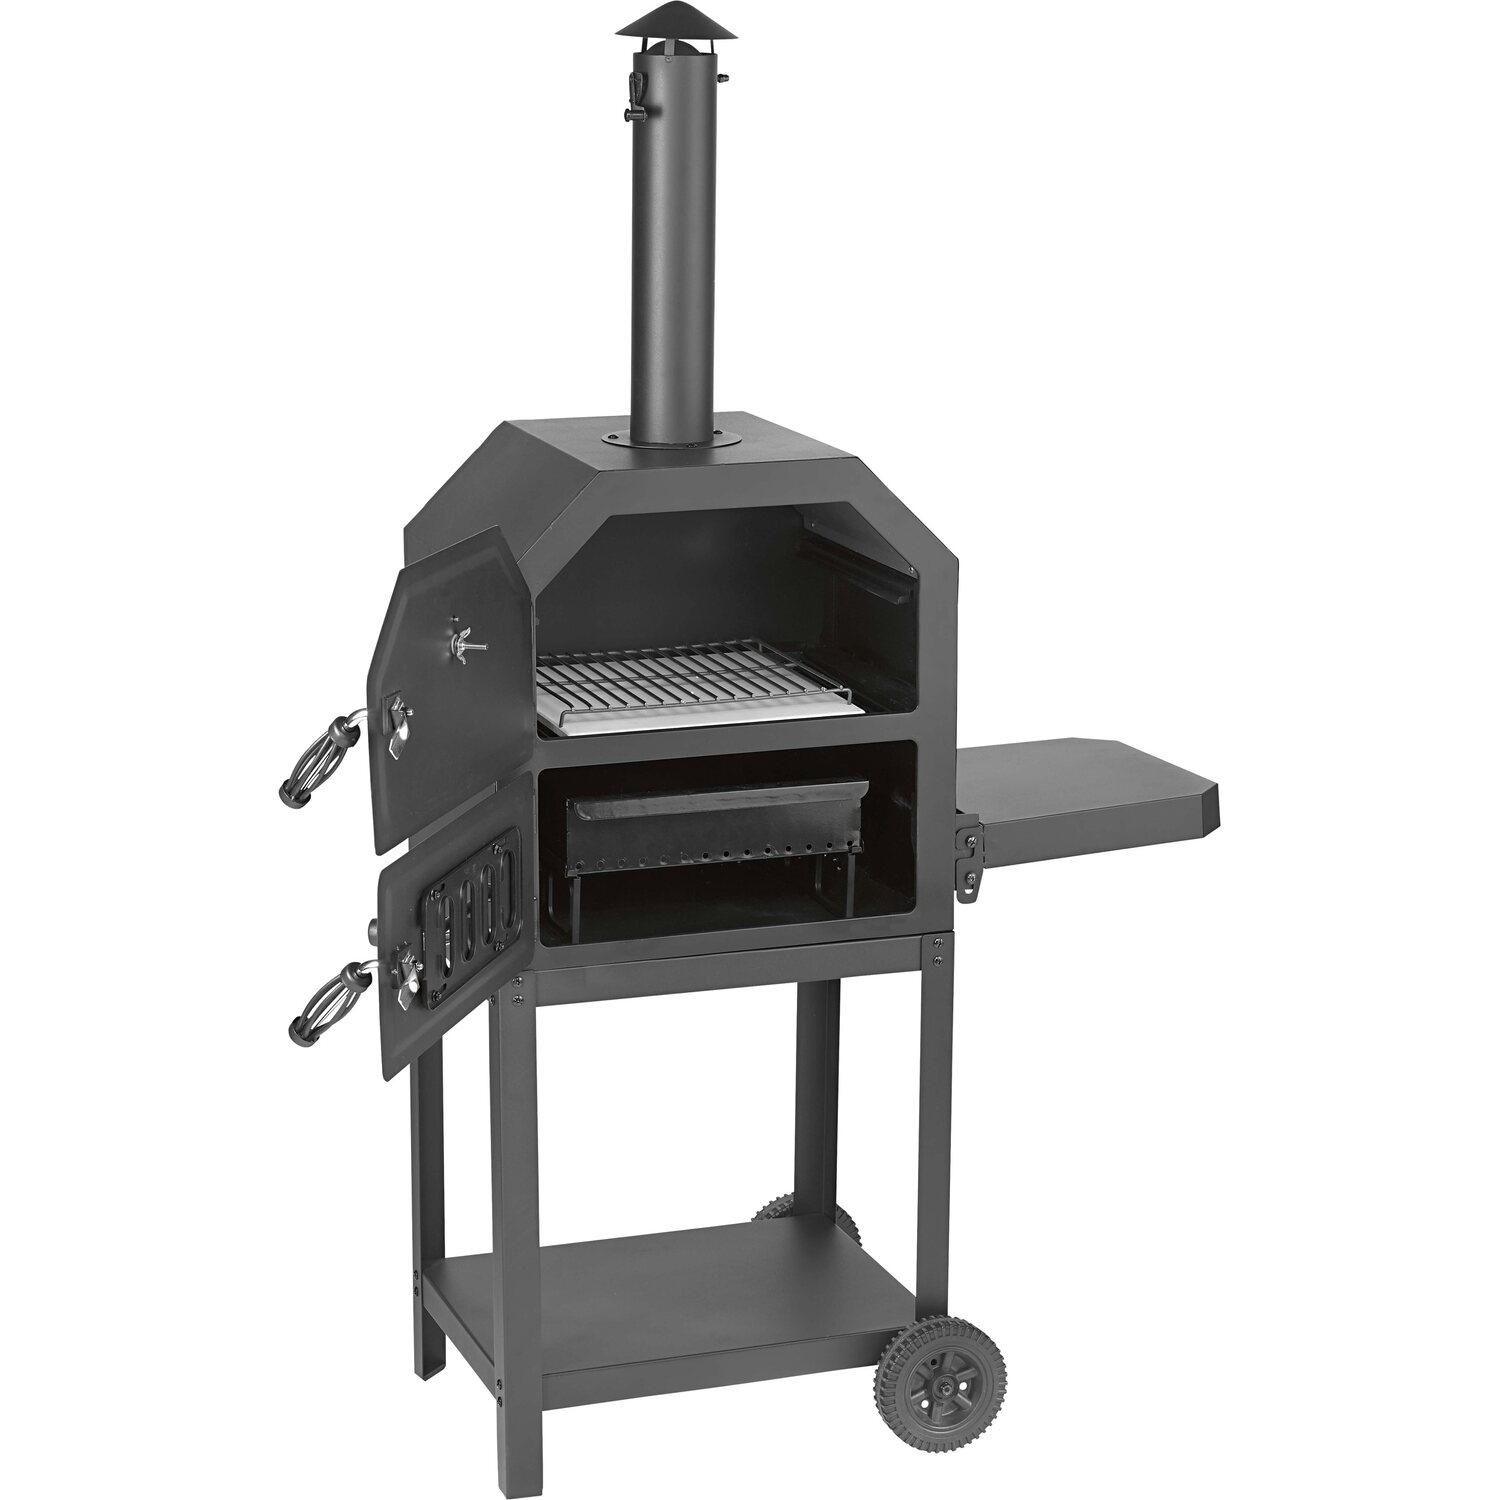 Buschbeck Pizzaofen Cool Jpg With Buschbeck Pizzaofen Kingstone